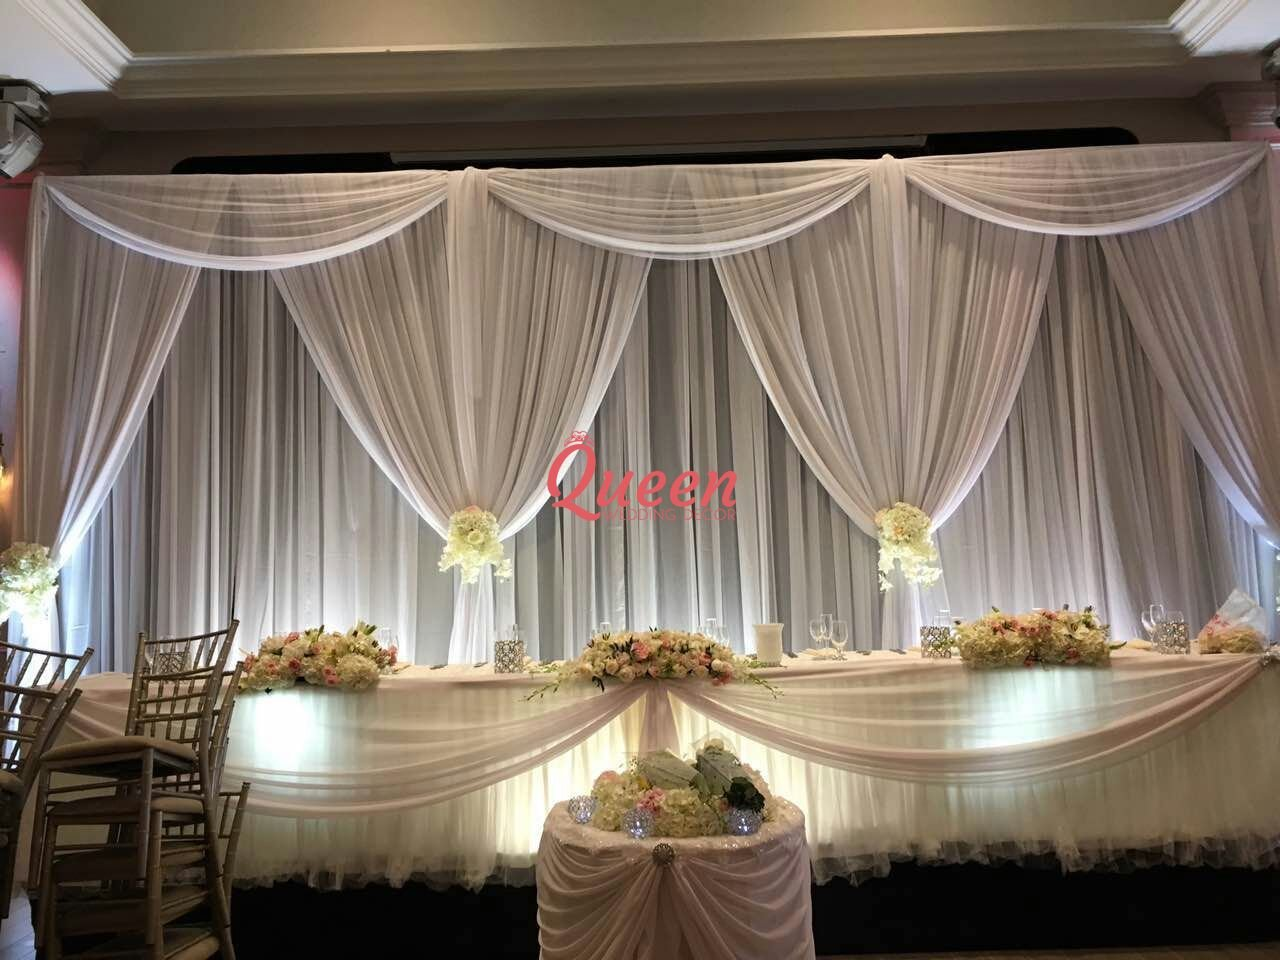 chair covers rental scarborough massage repair service technician wedding decorations reception ceremonies and events decor